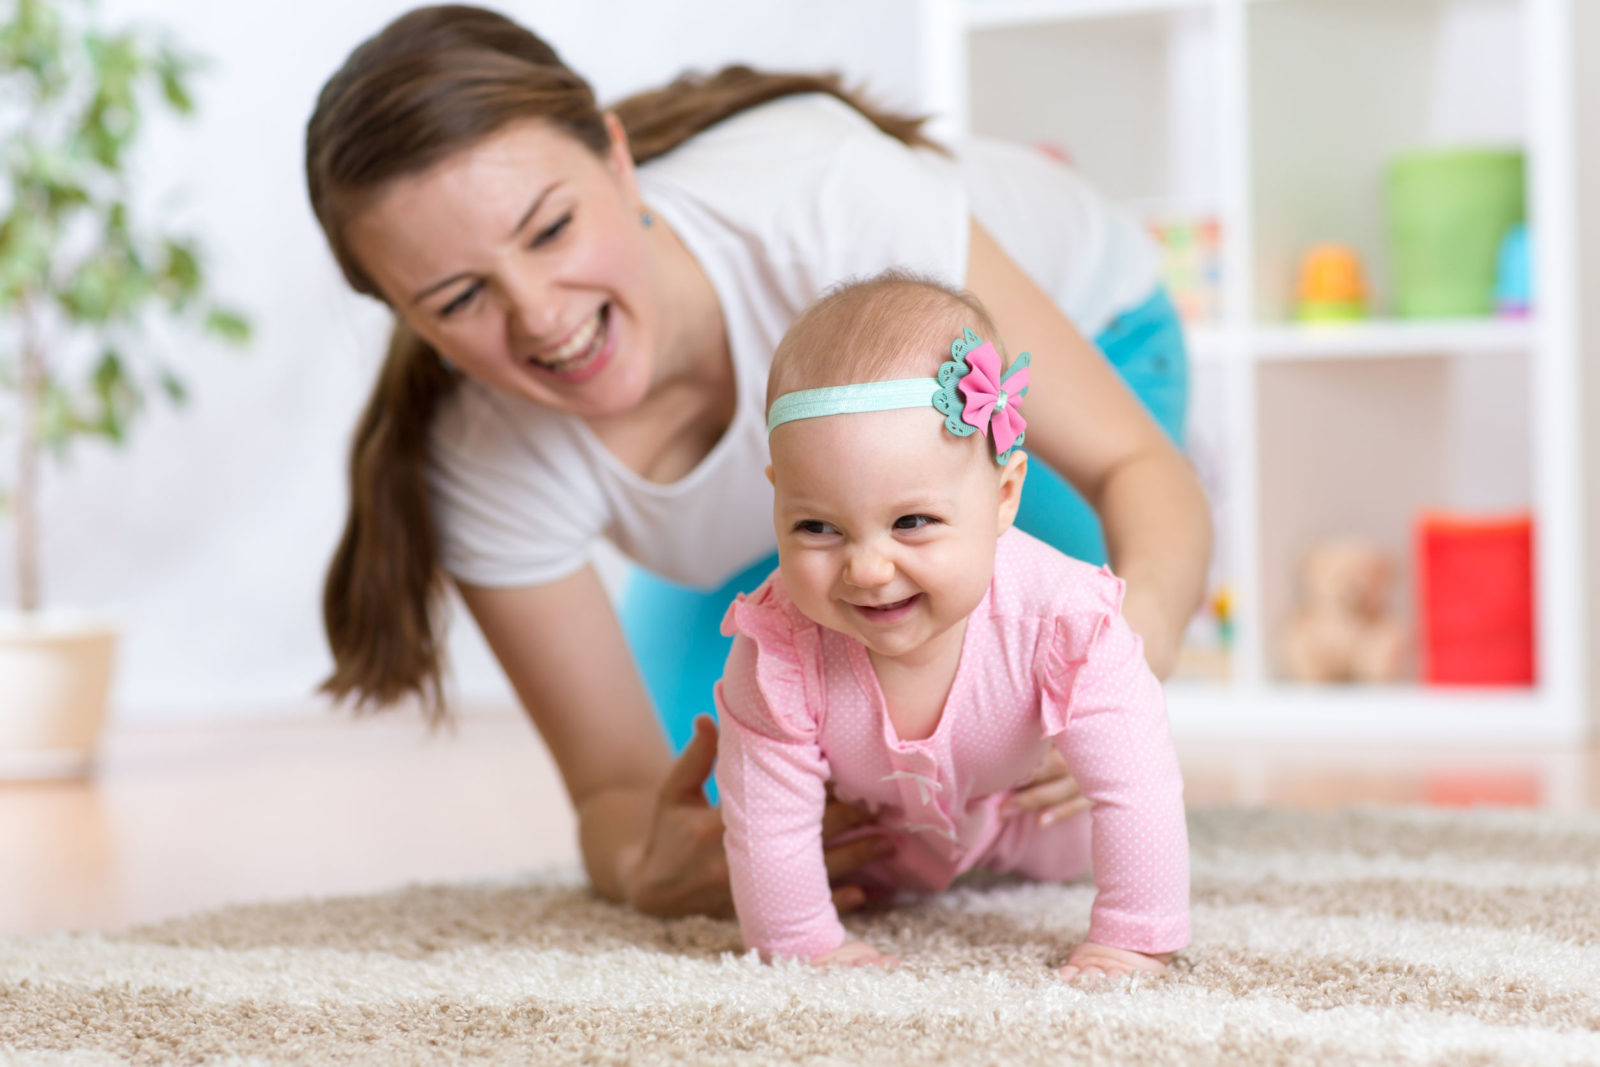 Nanny on the floor with baby in pink